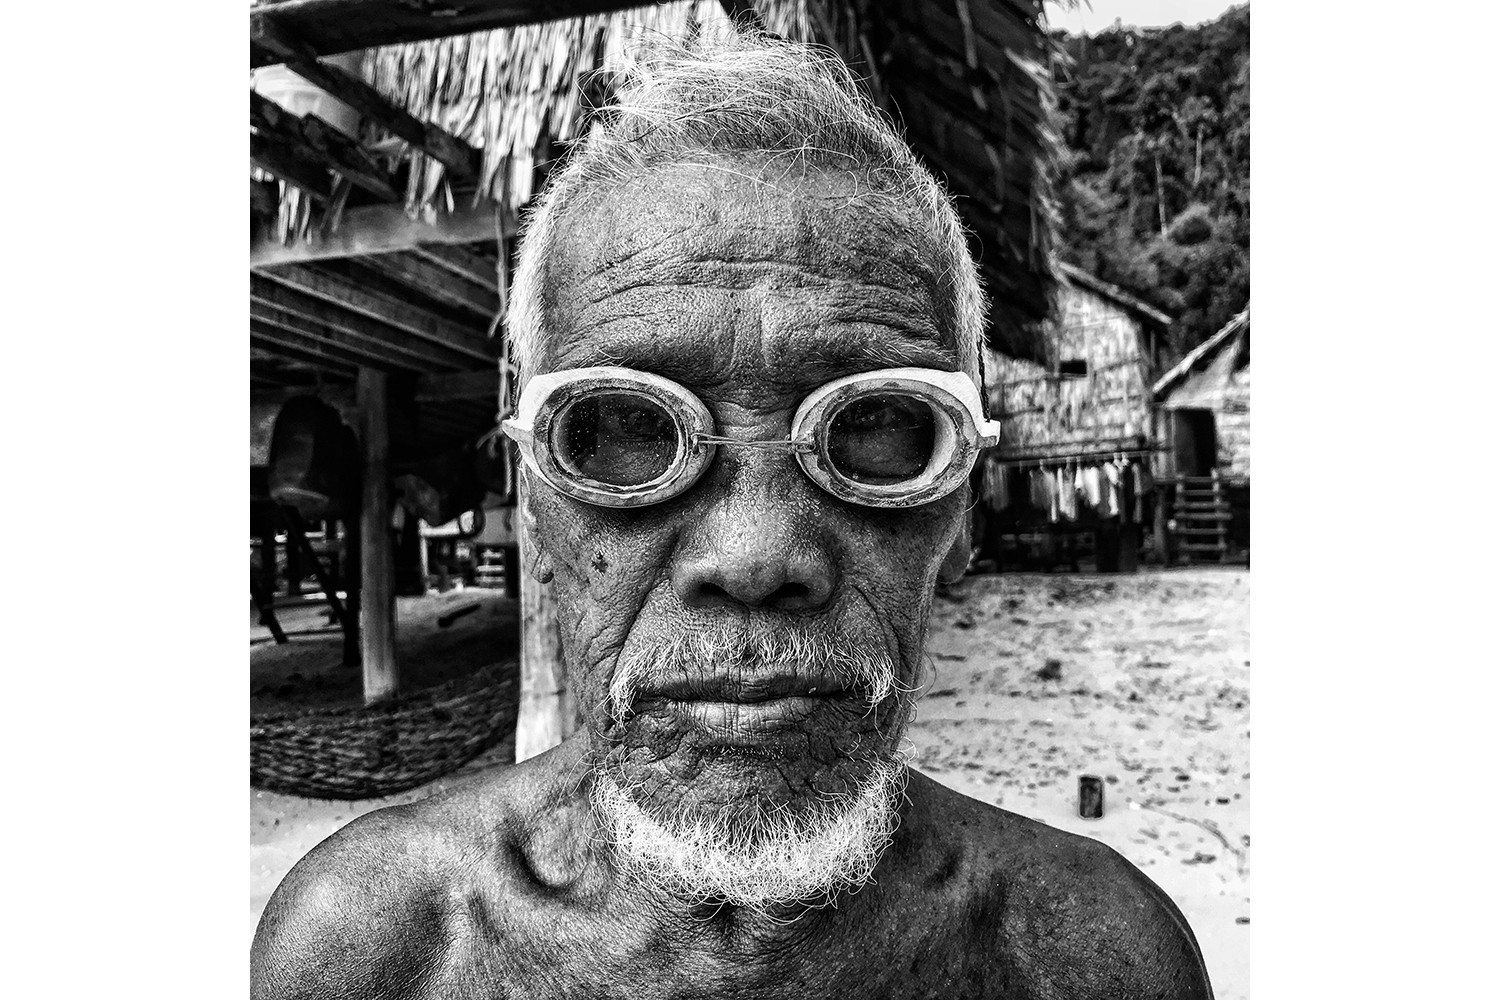 iphone_photography_awards_dtf_11